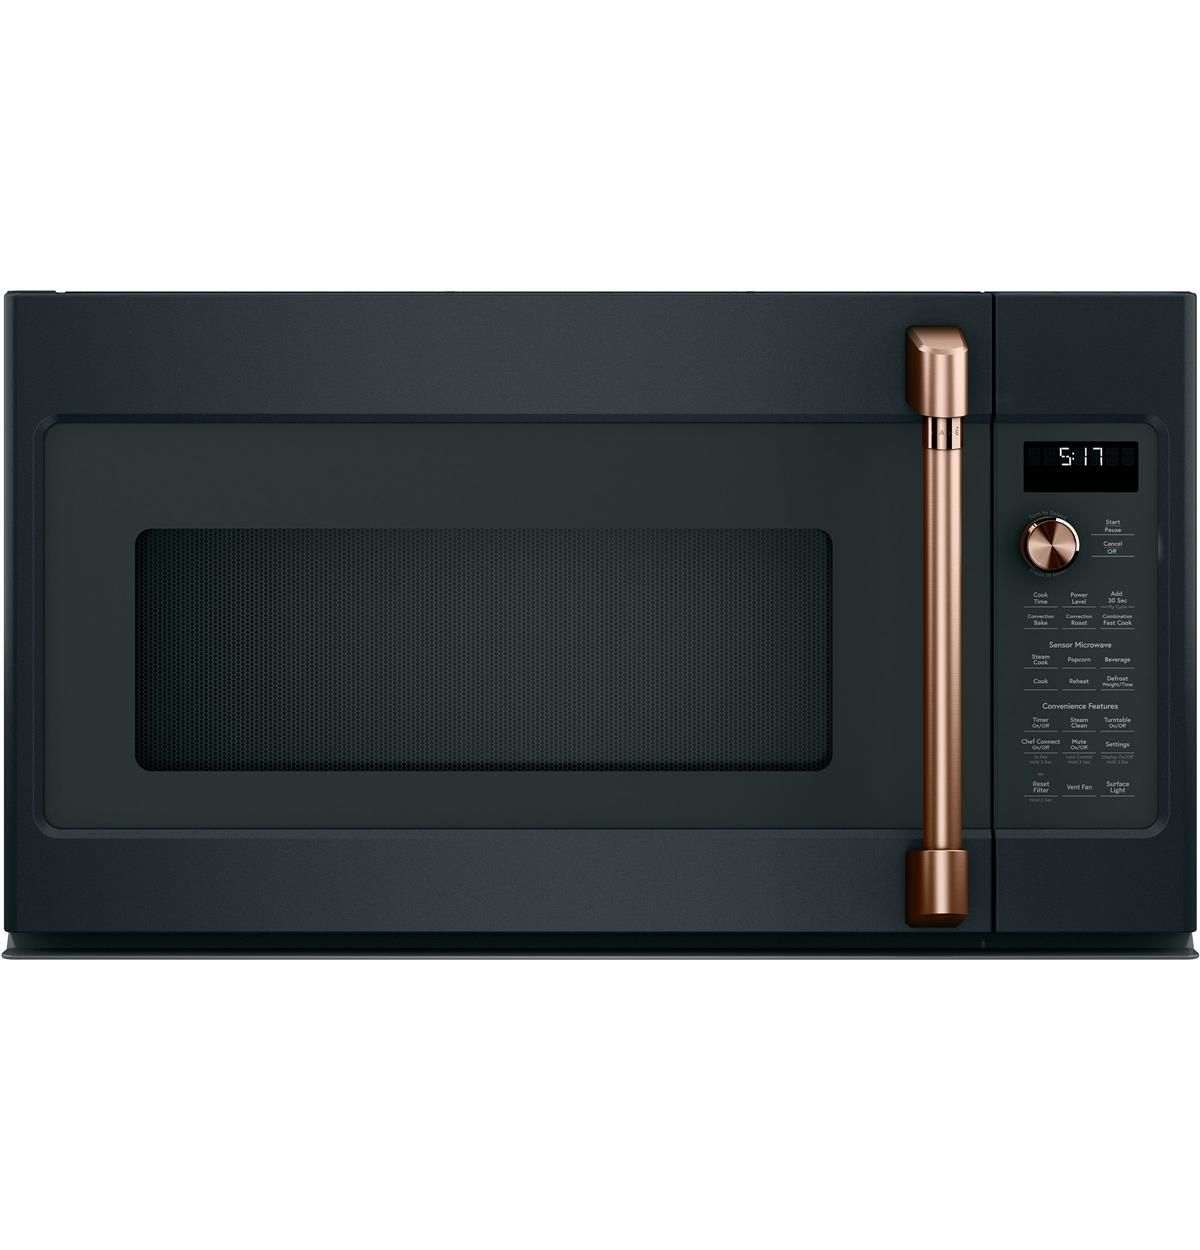 Cvm517p3md1 Overview Cafe 1 7 Cu Ft Convection Over The Range Microwave Oven Black And Copper Kitchen Copper Kitchen Appliances Gold Kitchen Accessories